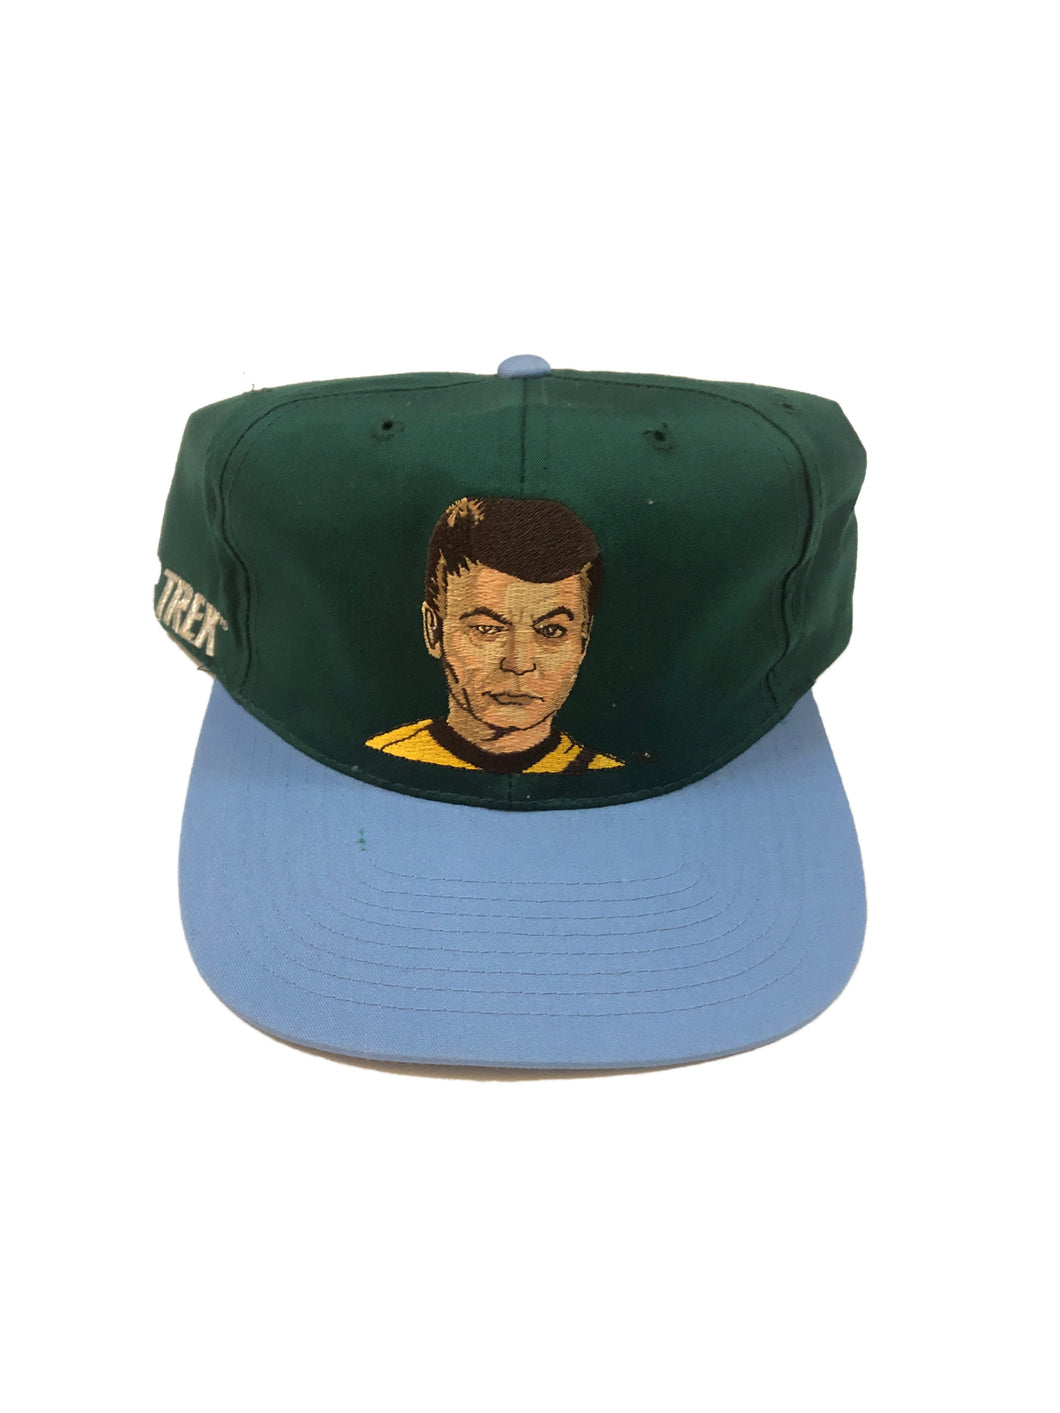 Star Trek Blockhead Snapback